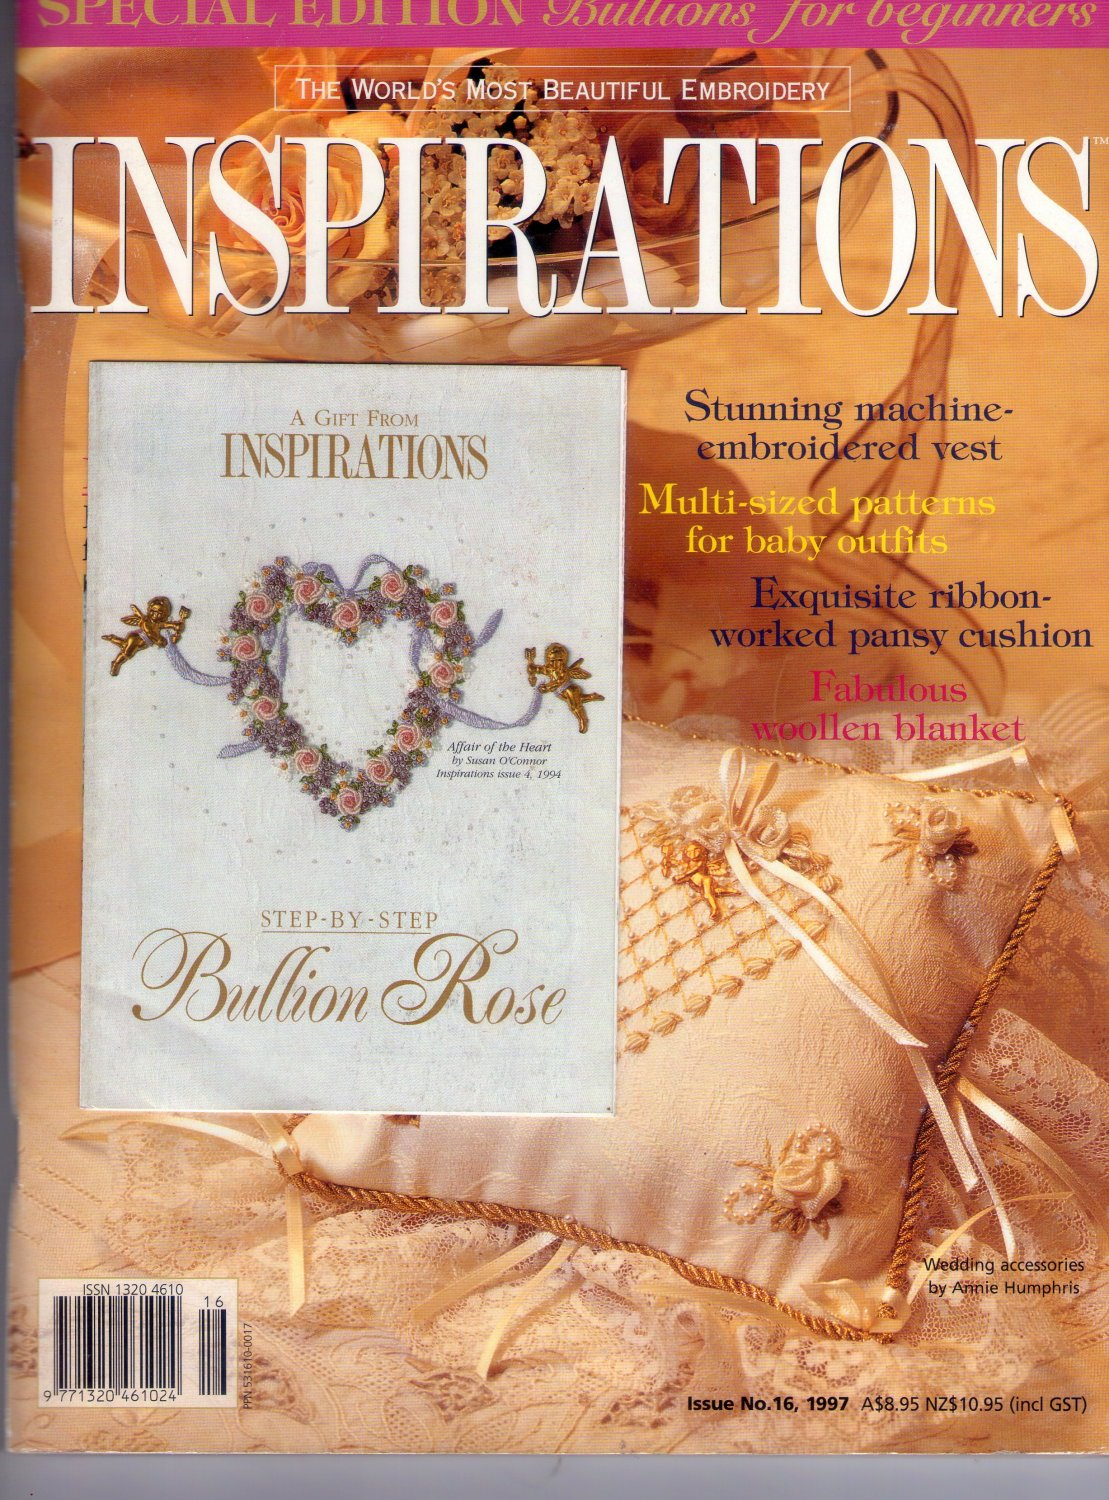 Inspirations no 16 Special Edition Embroidery